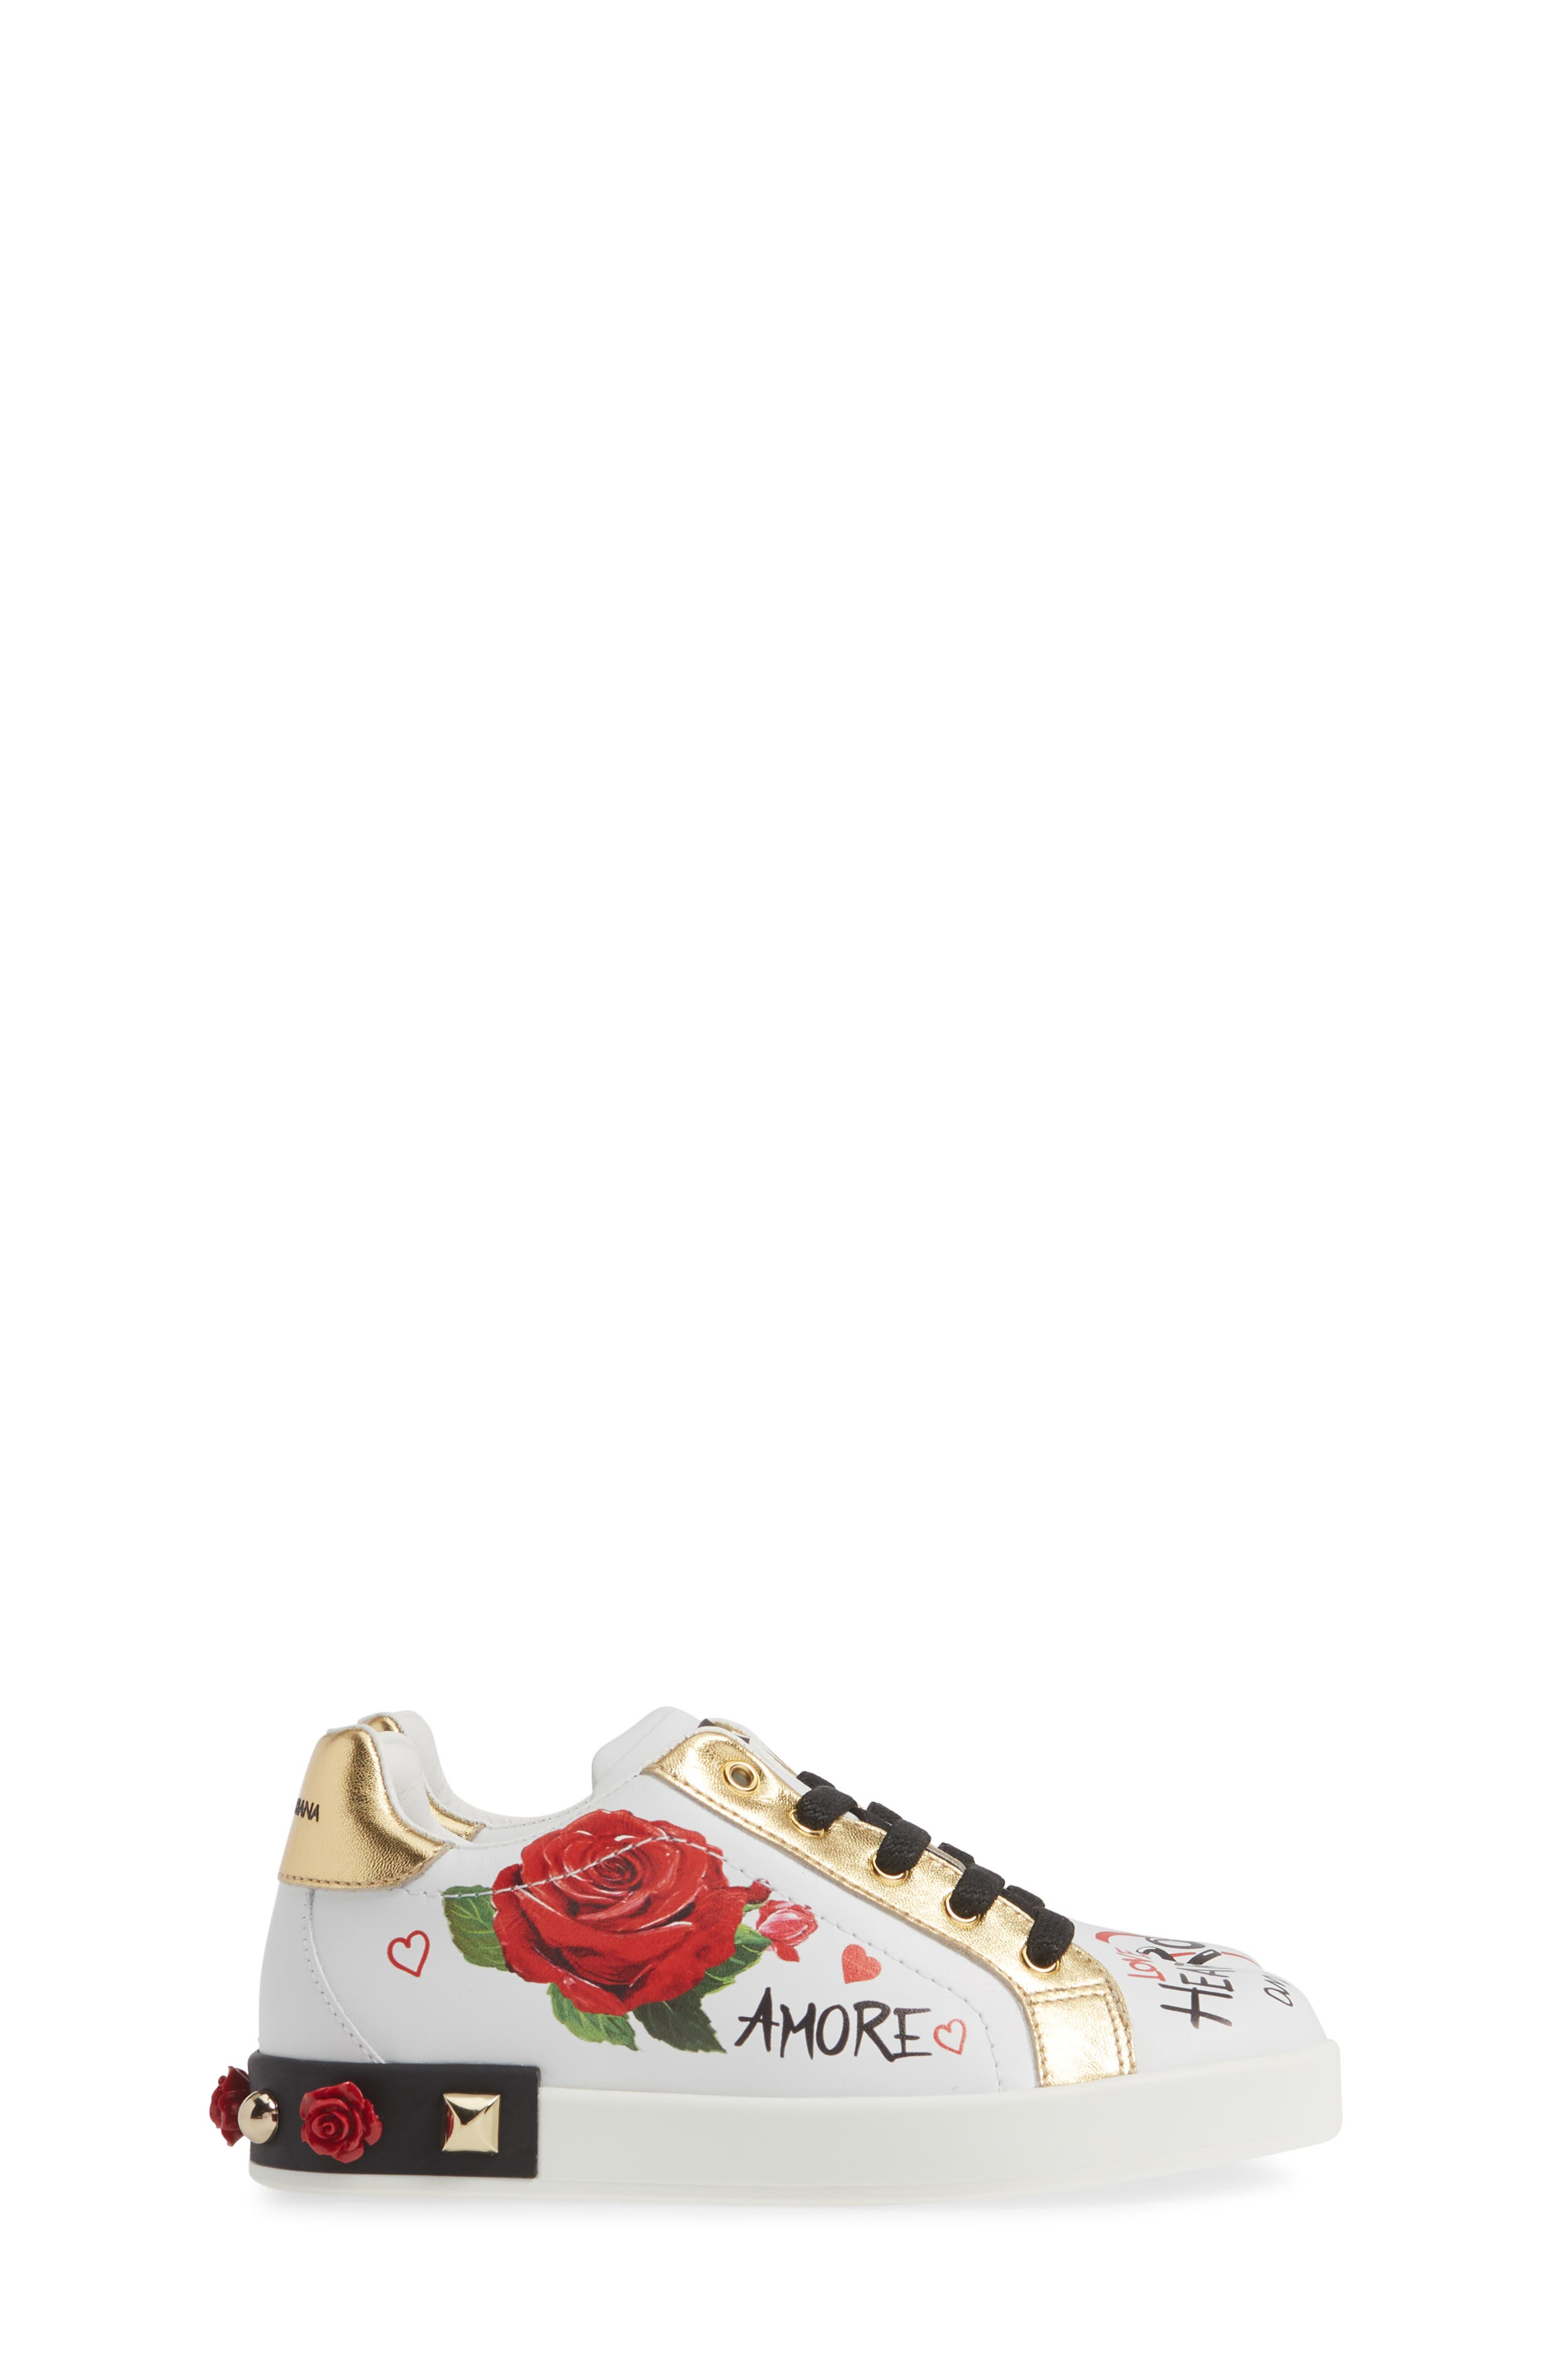 Amore Low Top Sneaker,                             Alternate thumbnail 3, color,                             WHITE